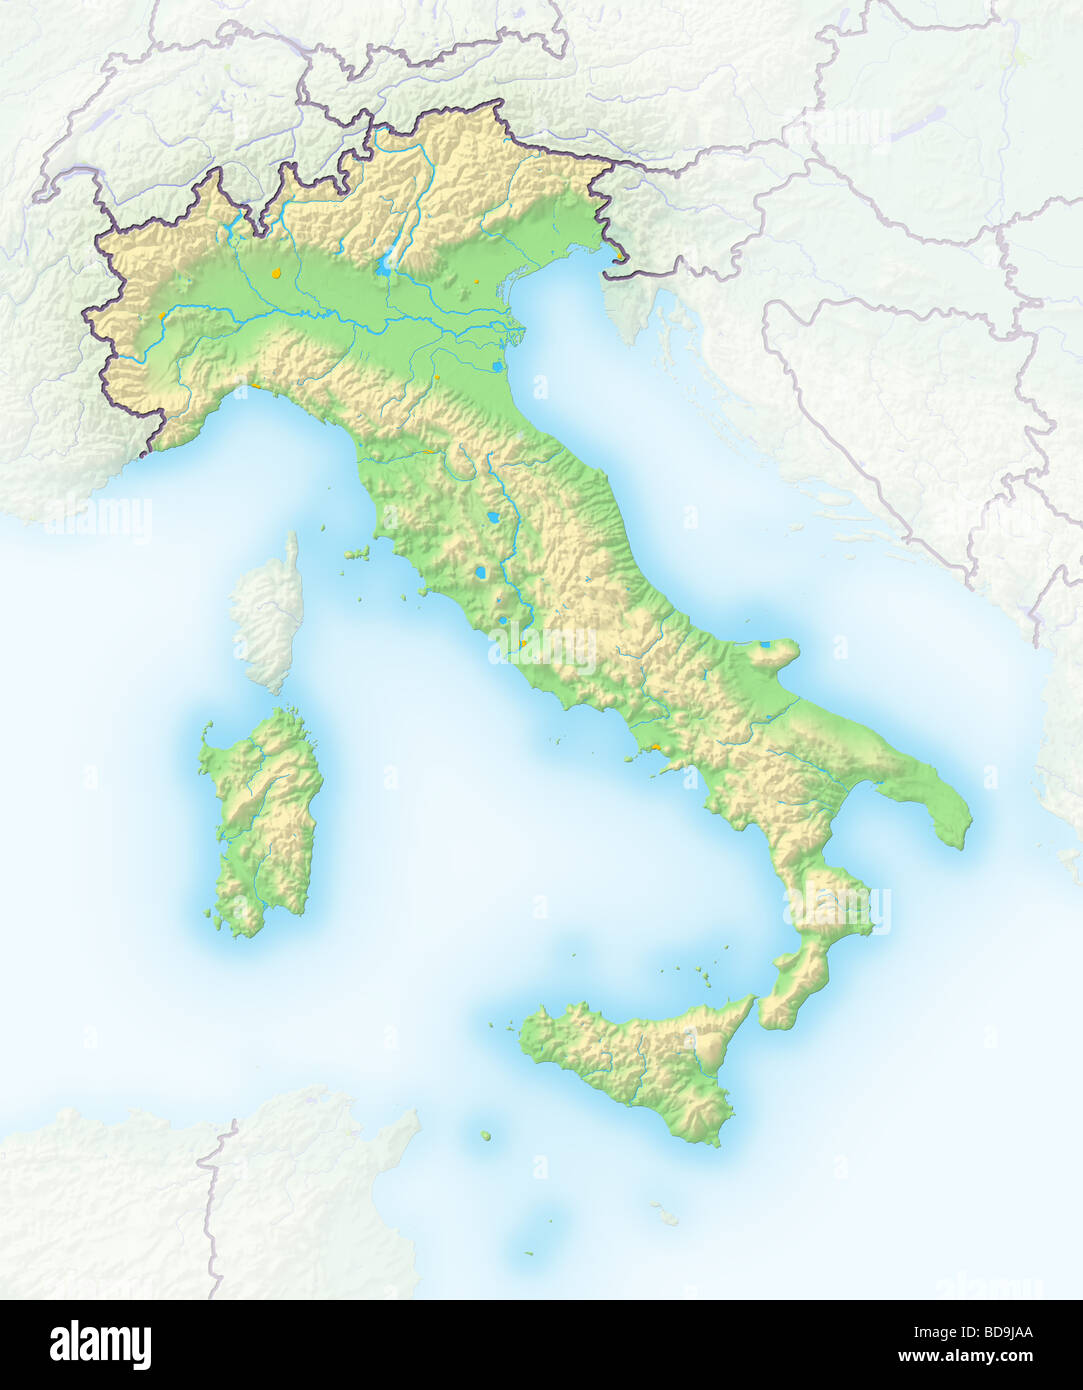 Italy Shaded Relief Map Stock Photo